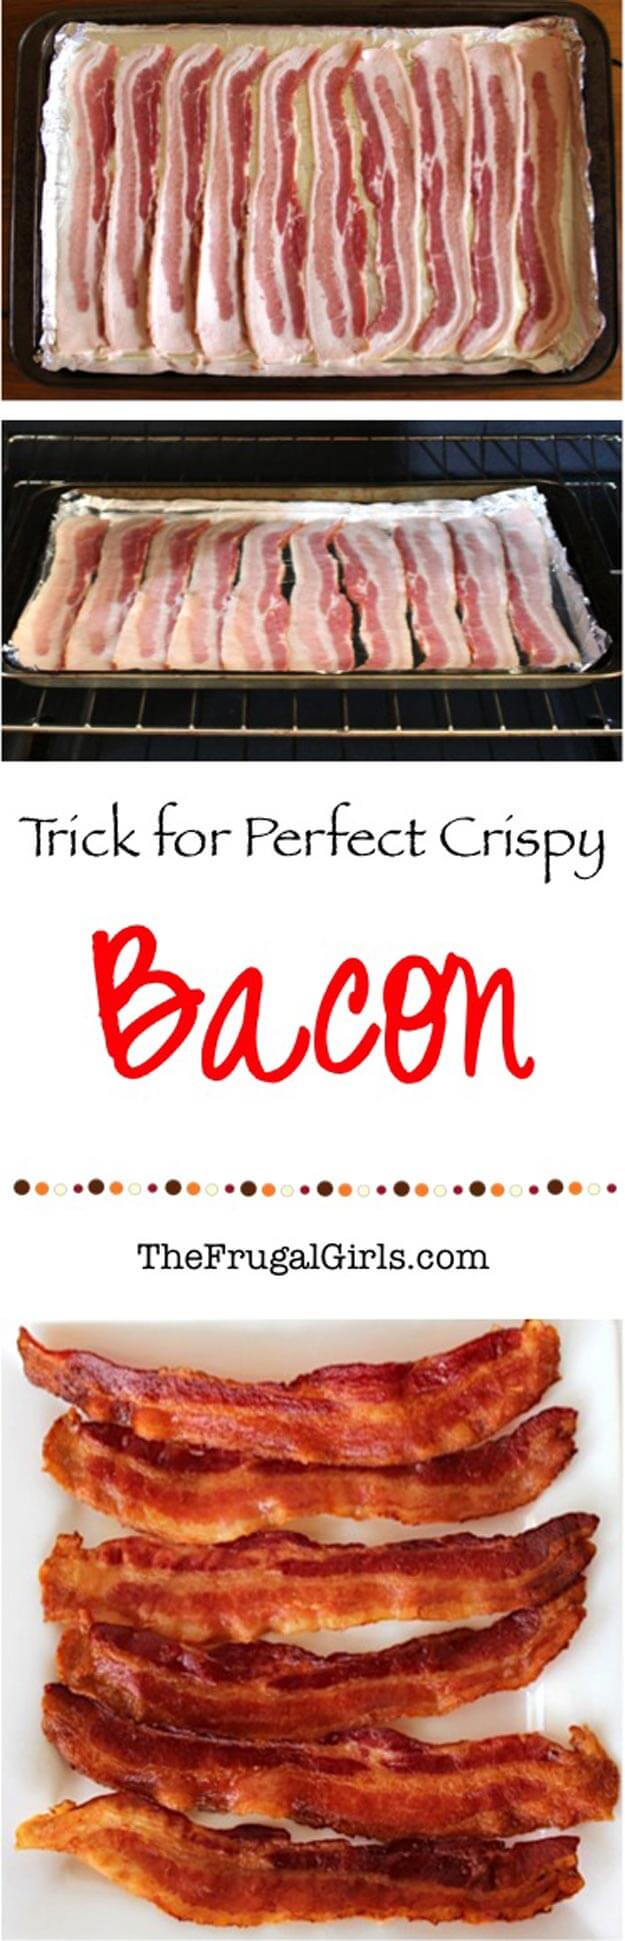 Make Perfect Crispy Bacon In The Oven